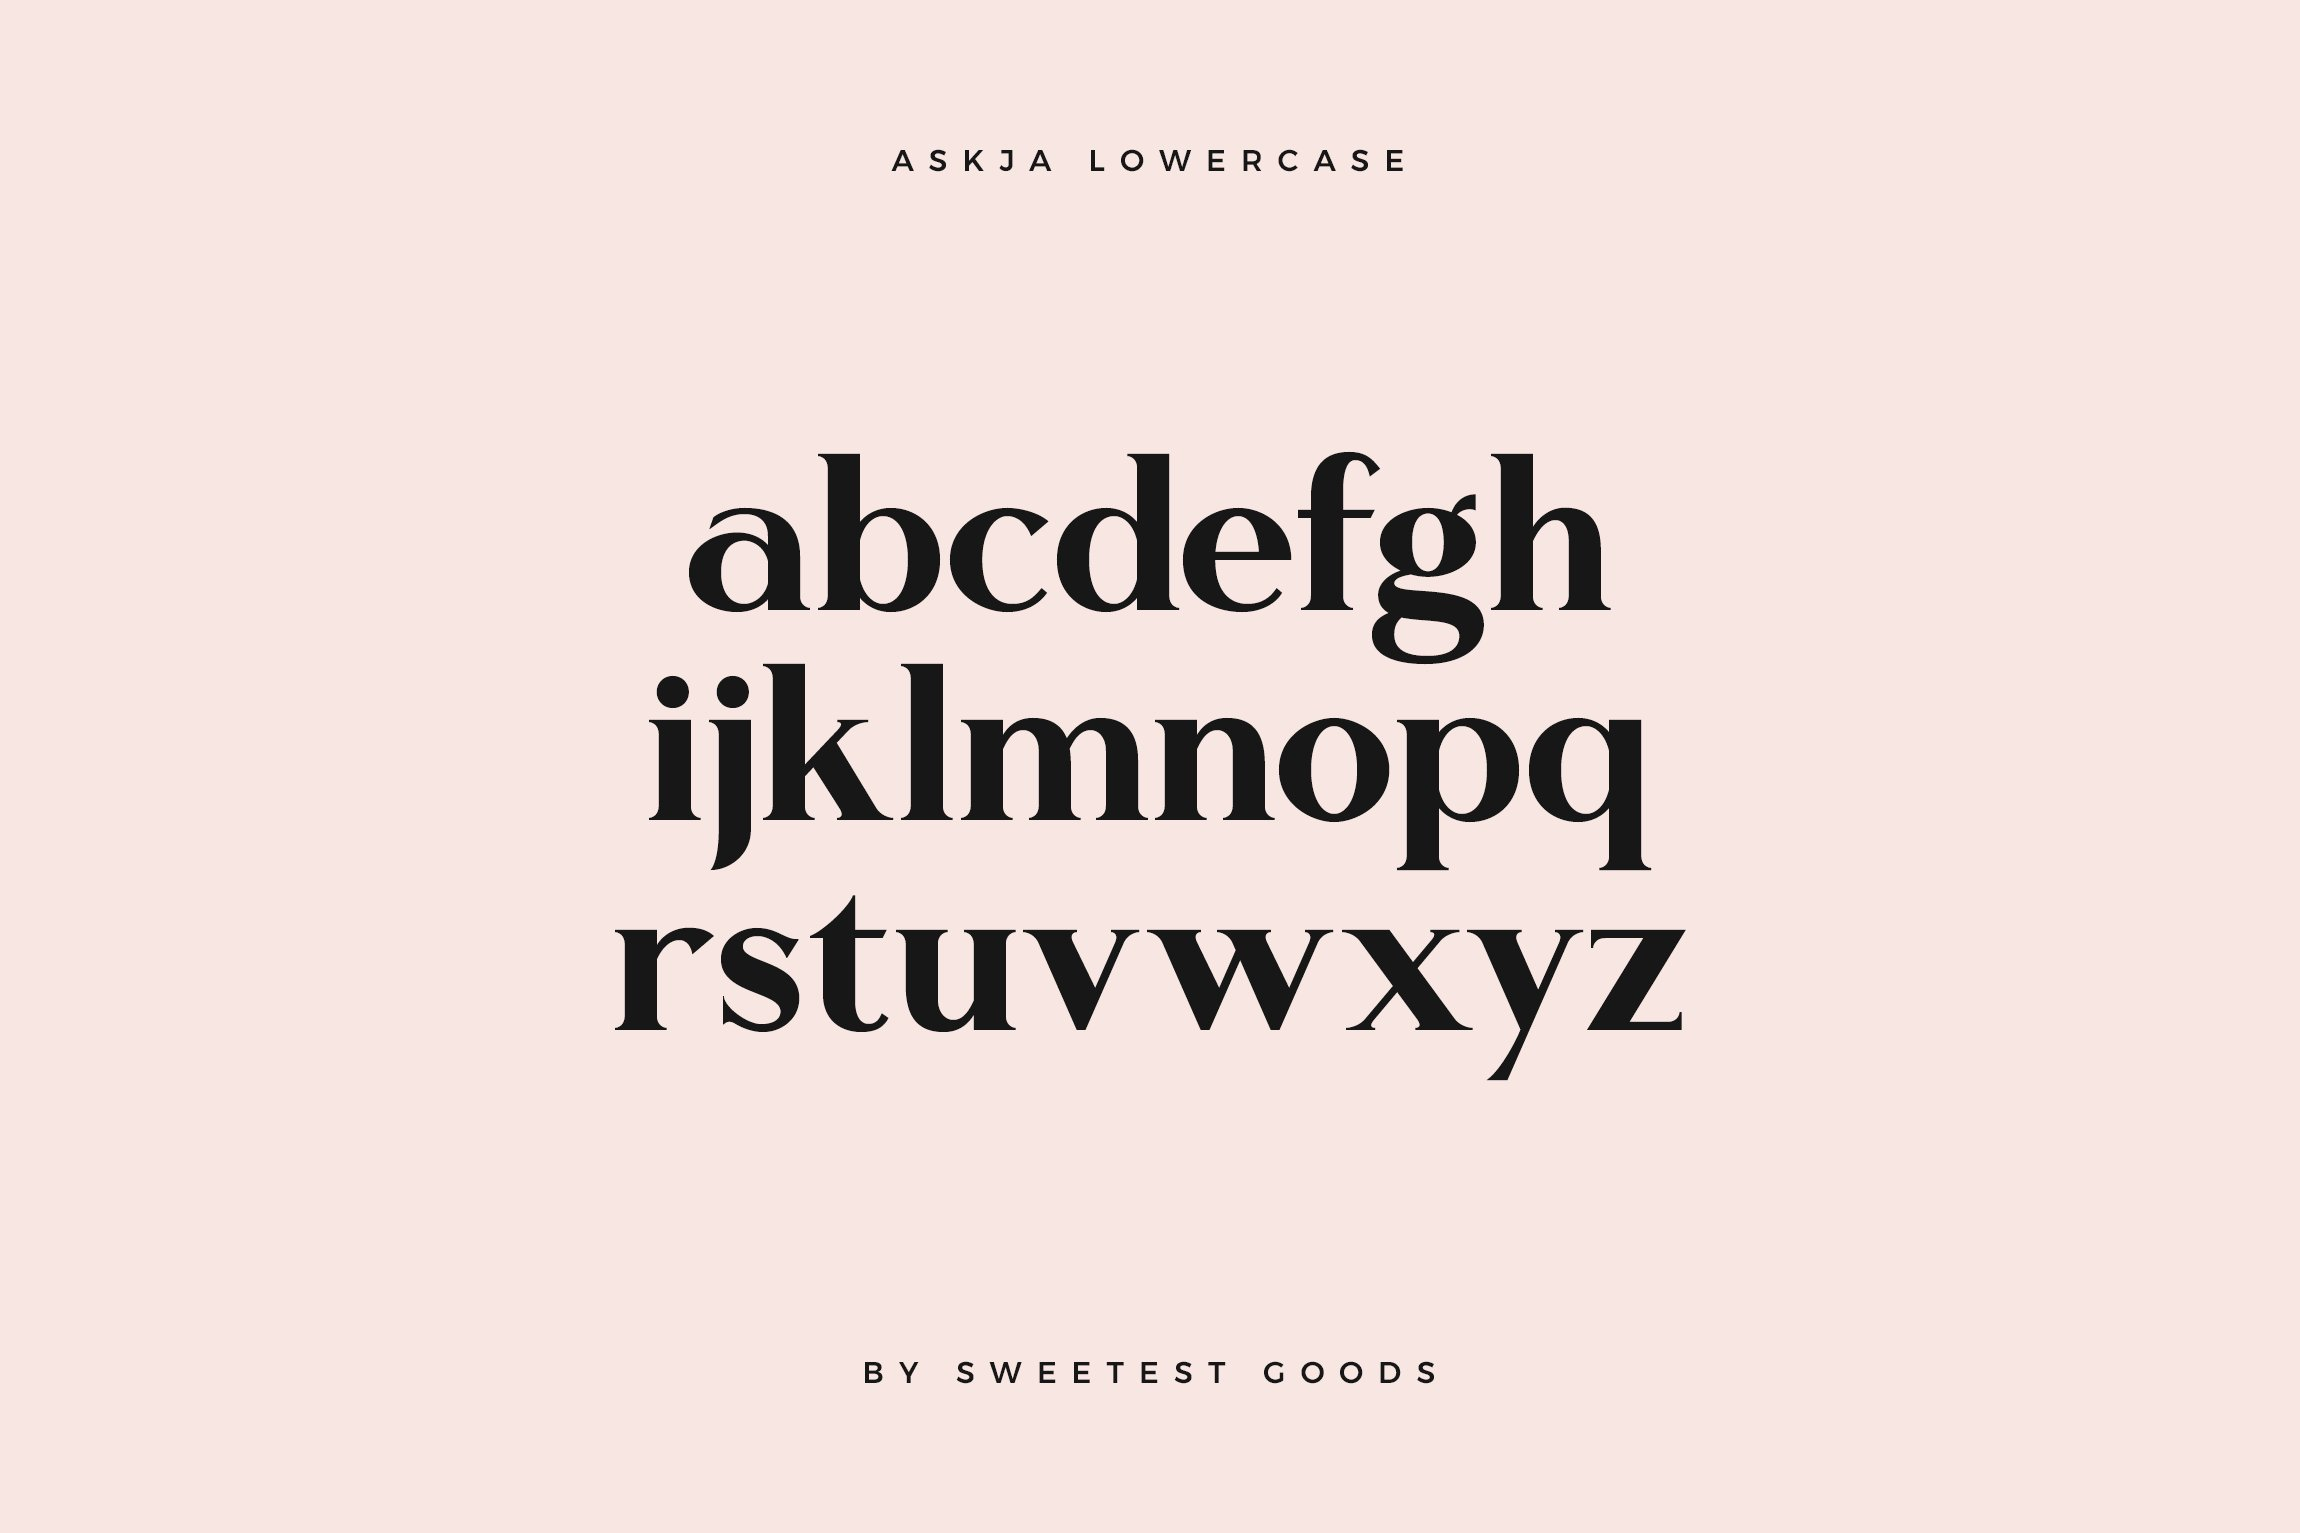 askja font alphabet sweetest goods lowercase 8